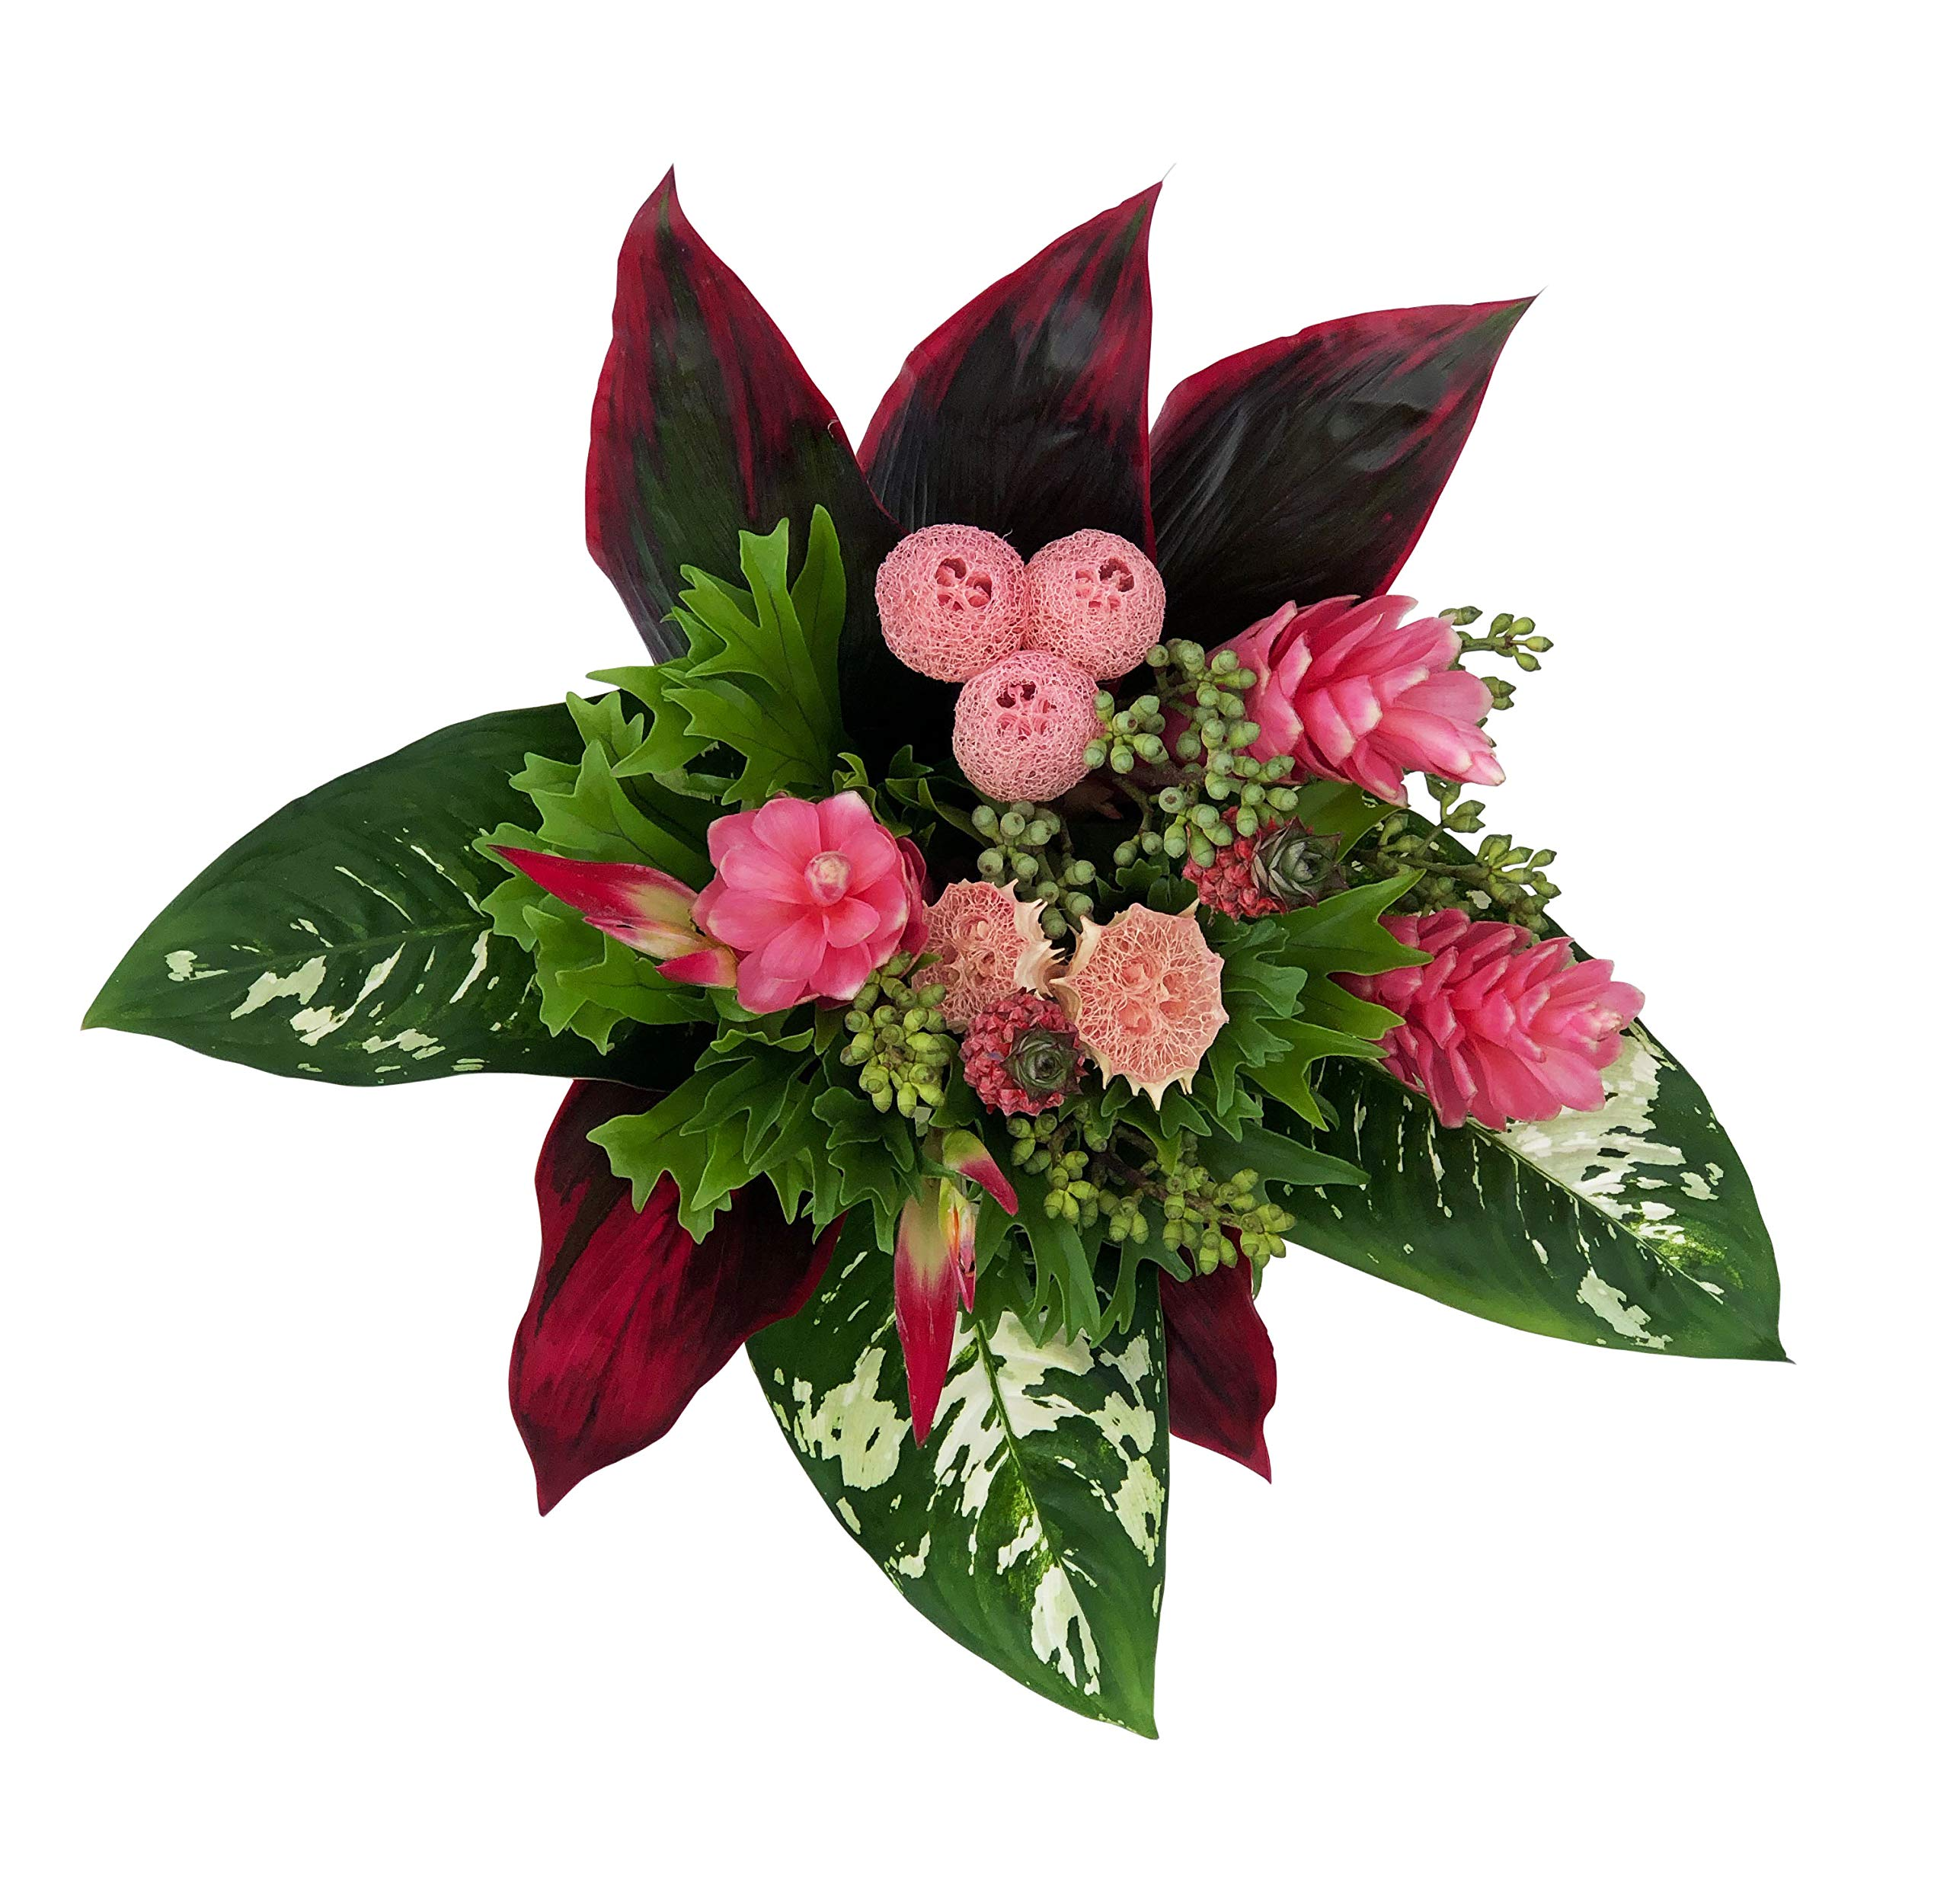 Tropical Bouquet Pink Paradise with Pink Loofah, Pink Tropical Flowers, and Lush Tropical Greenery